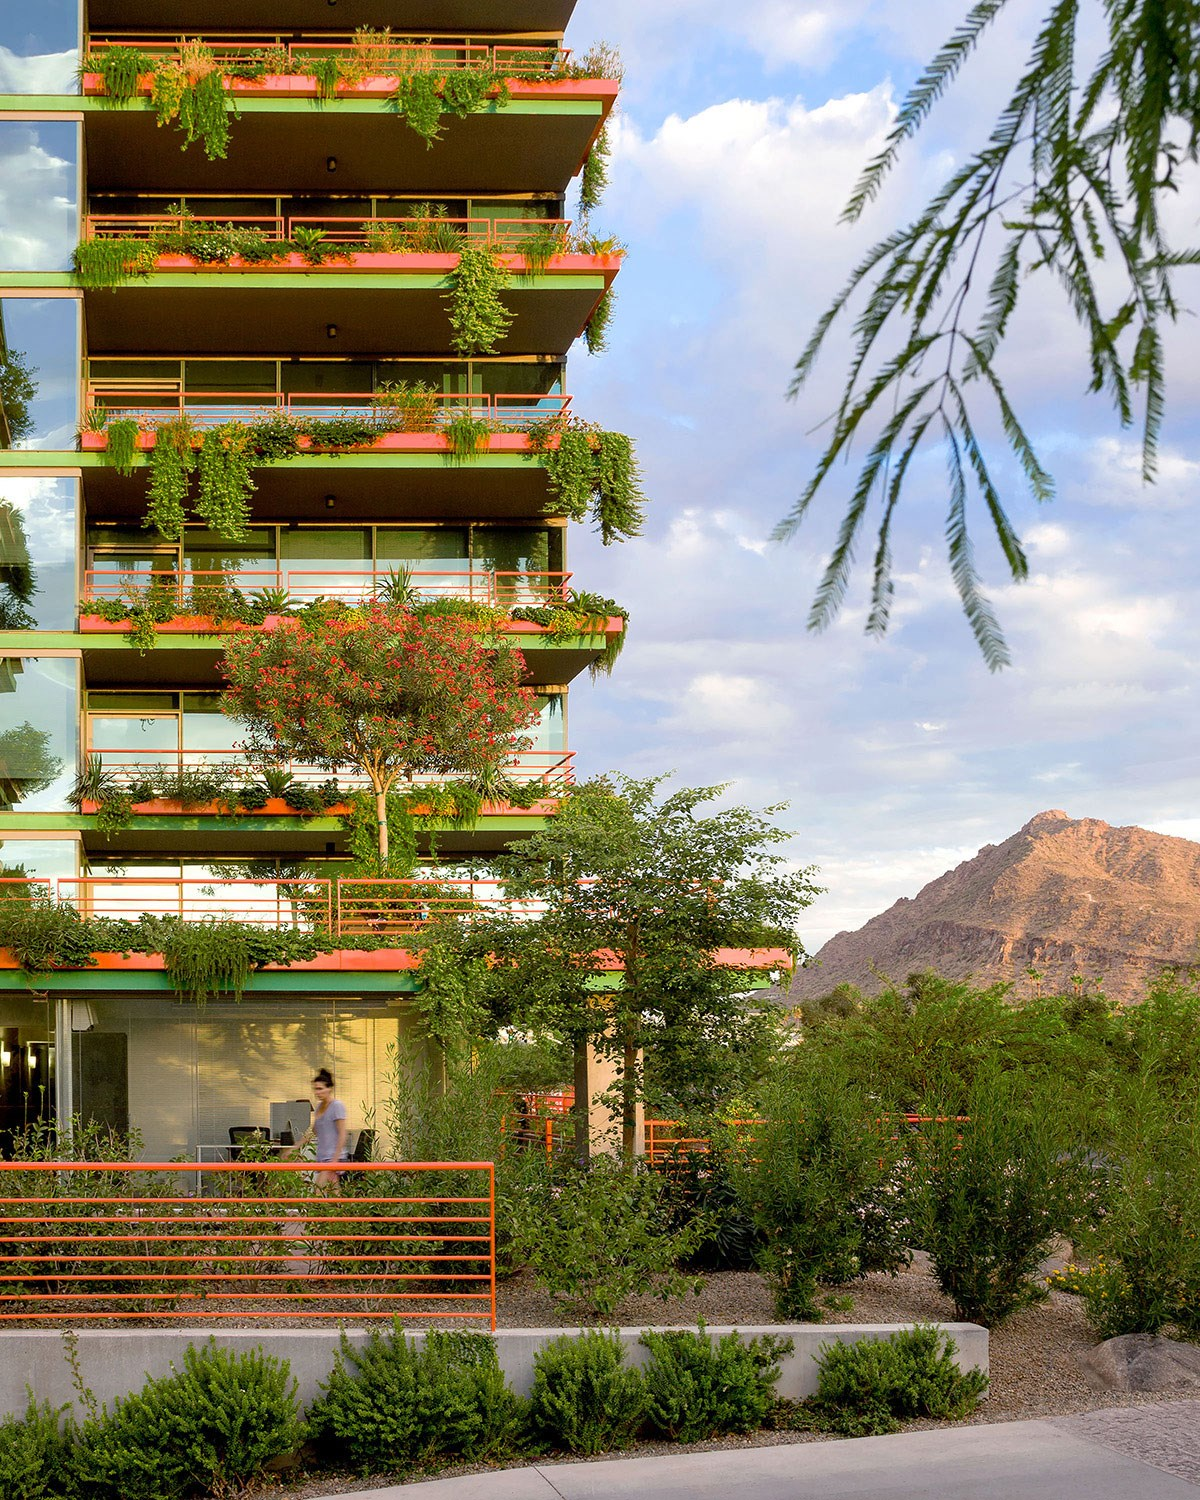 Lush vegetation and vines hanging from the patios of Scottsdale's premier luxury apartment community